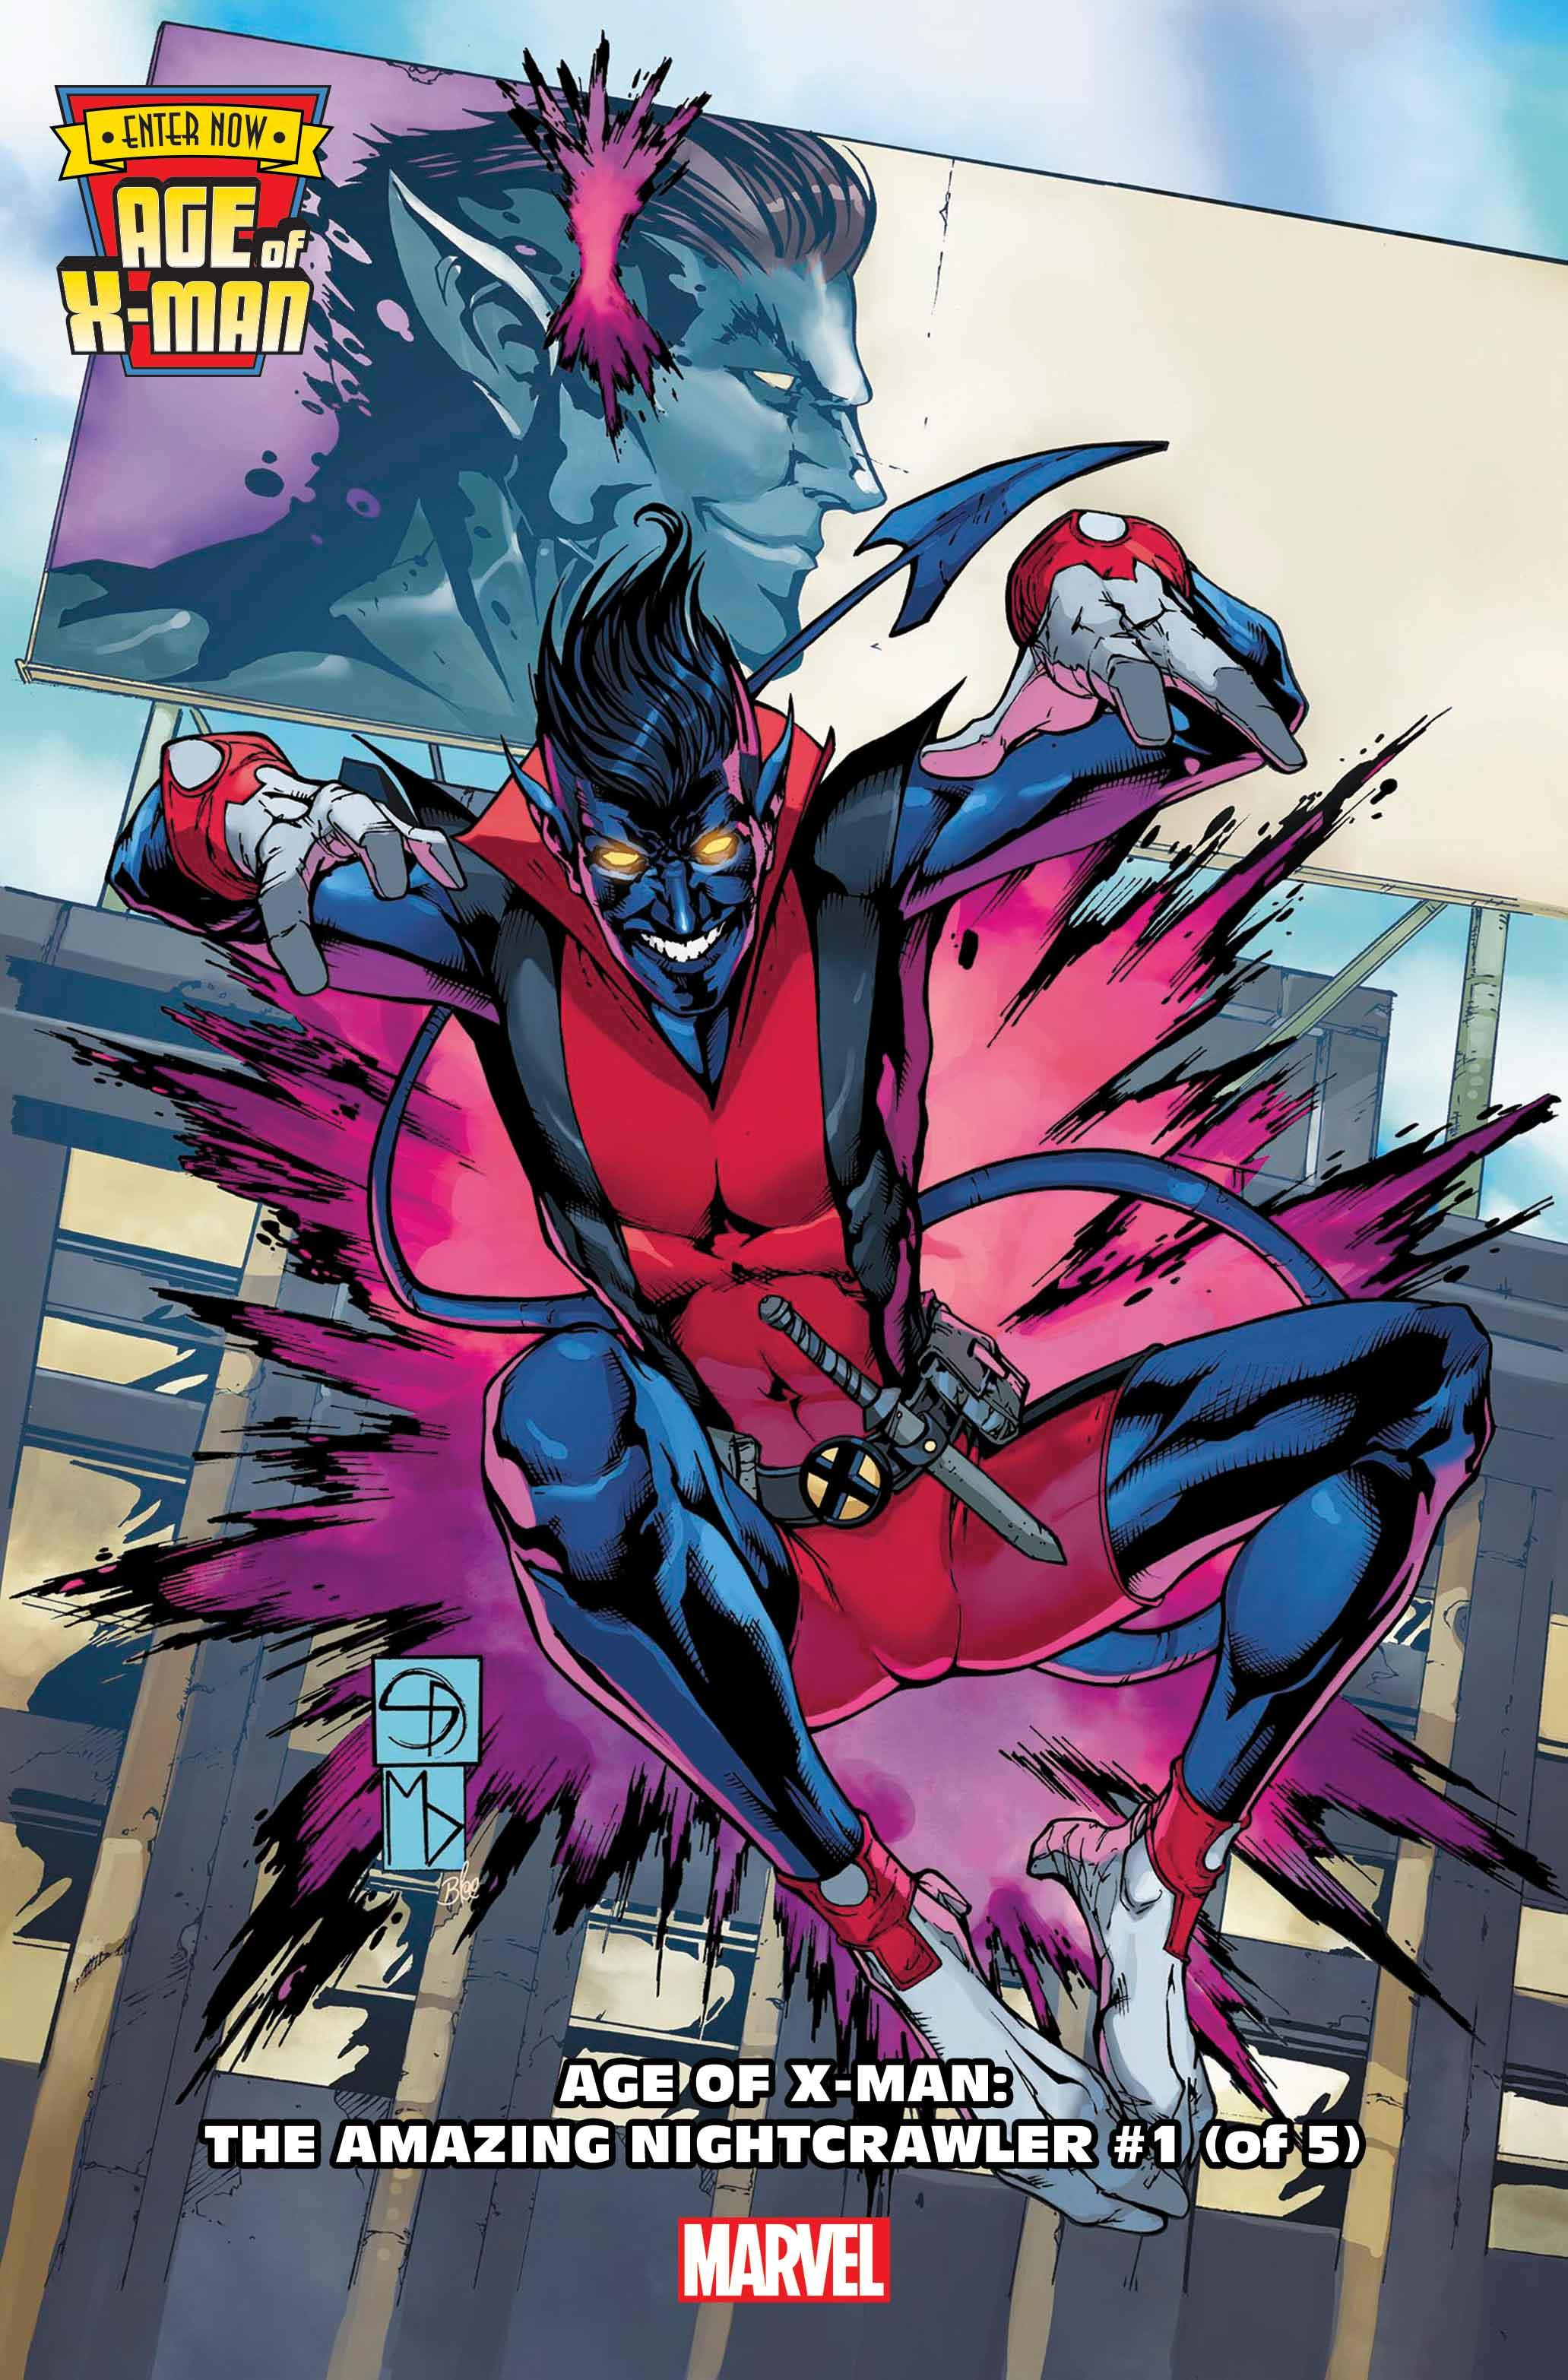 Amazing Nightcrawler #1